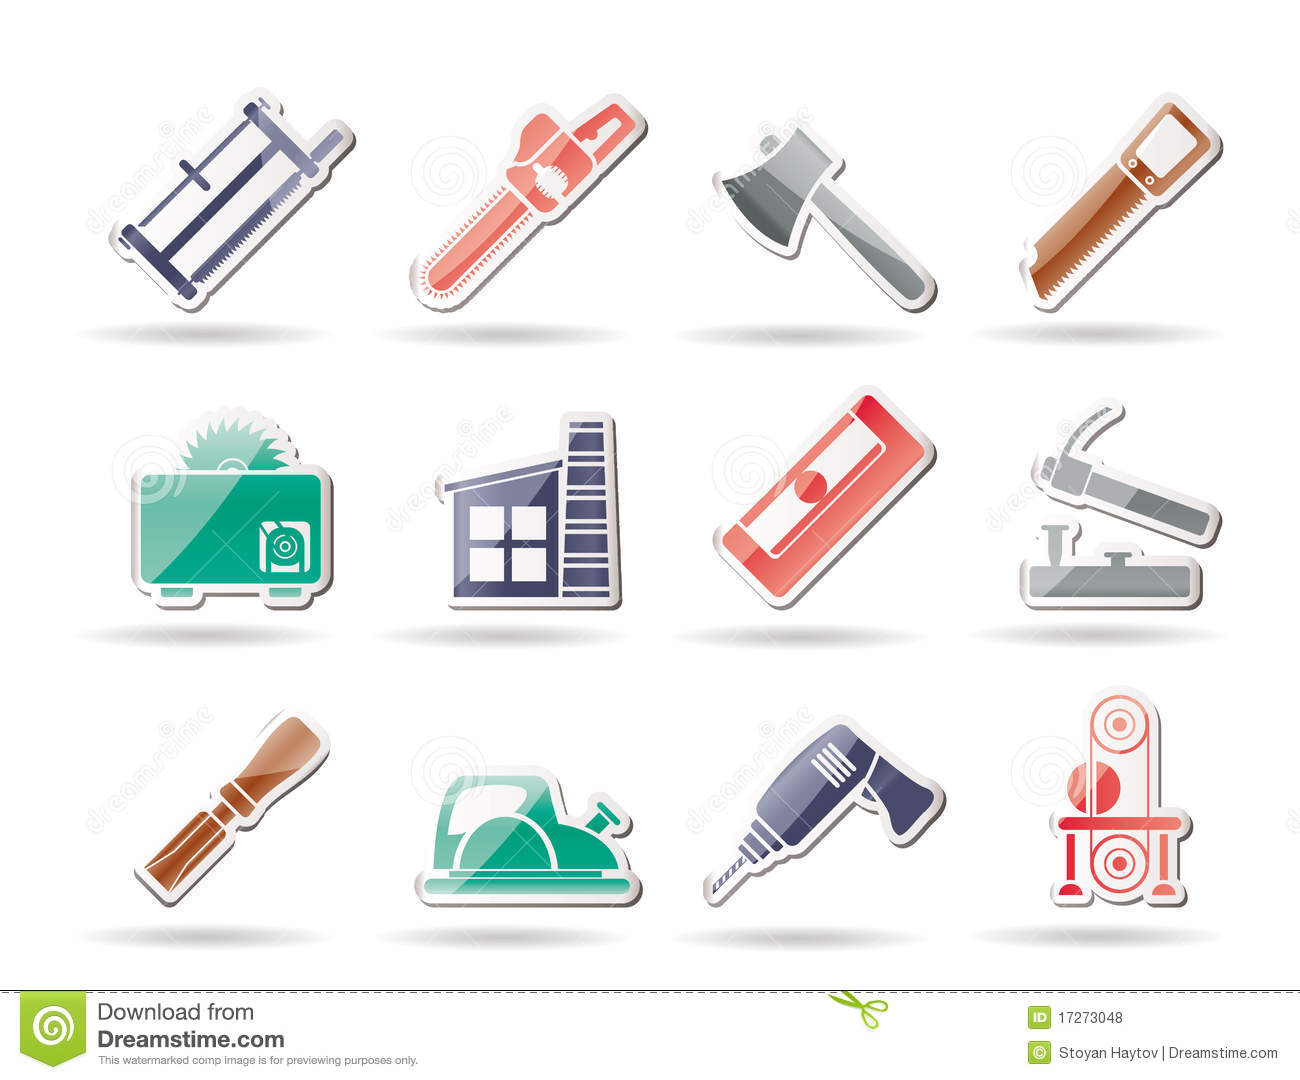 Woodworking Industry And Woodworking Tools Icons Stock Vector - Image: 17273048